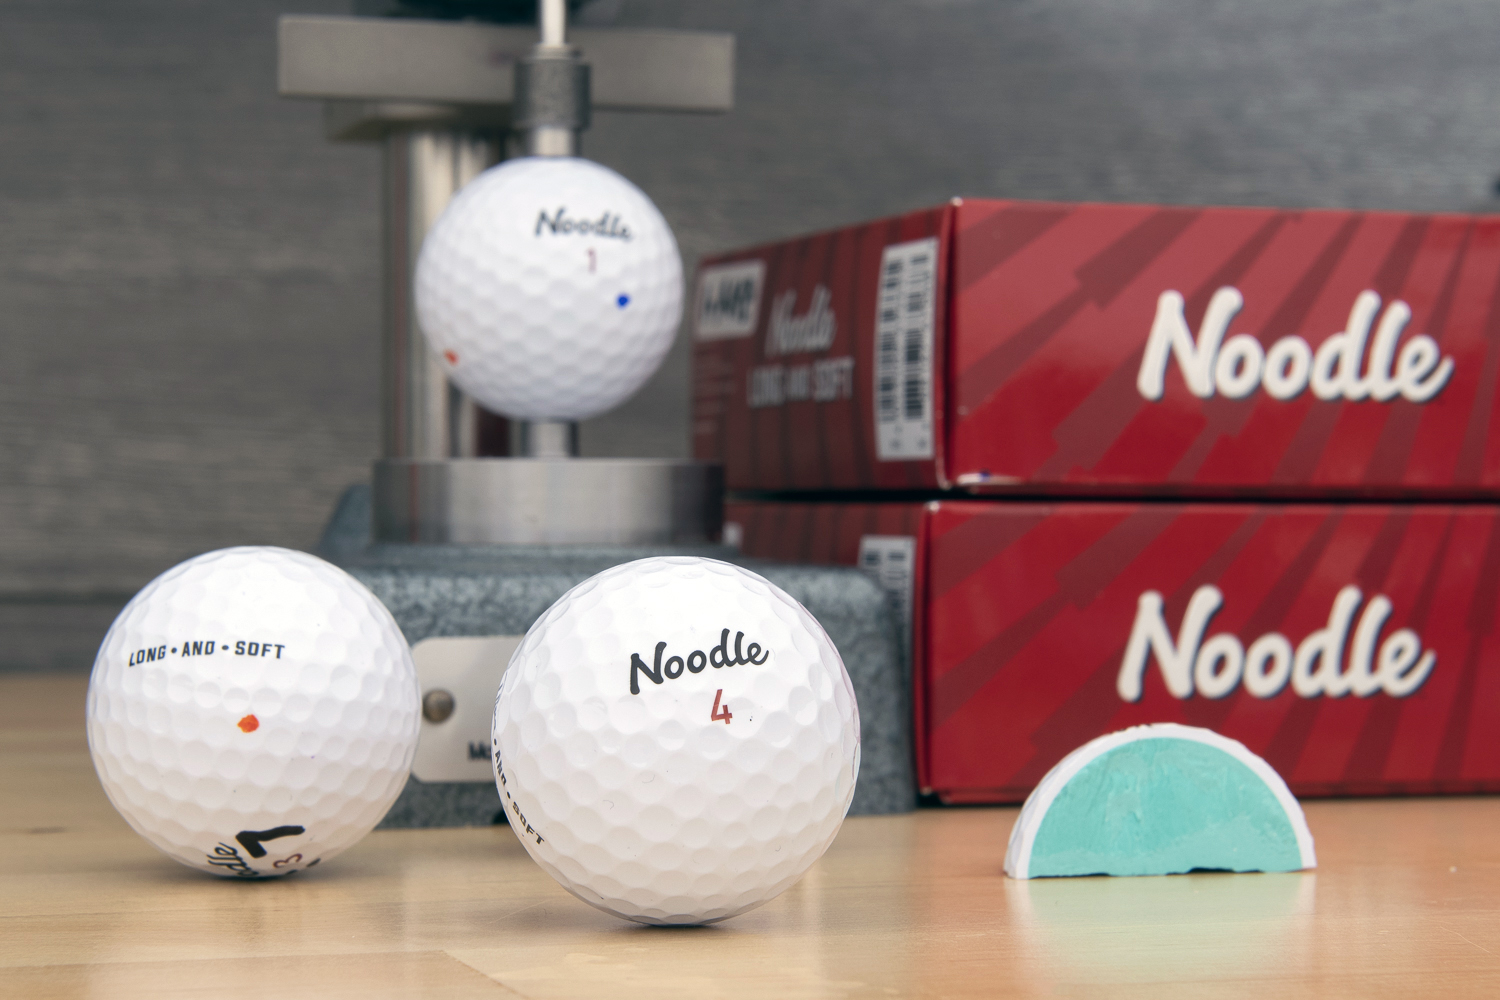 An image of the Noodle Long and Soft golf ball